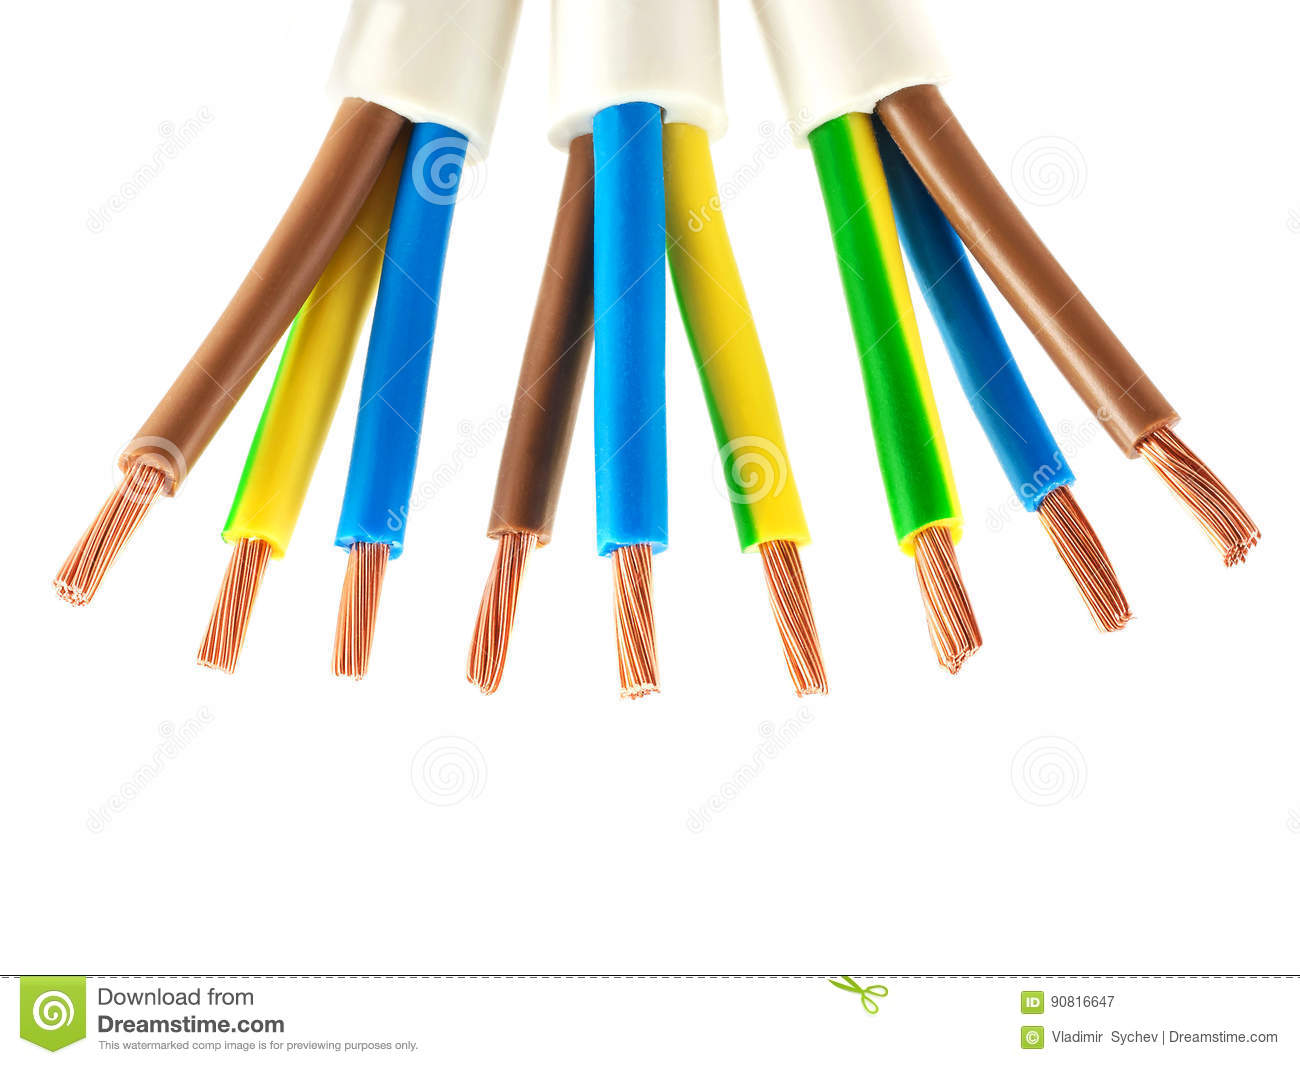 Astonishing Copper Electric Wires Stock Image Image Of Current Black 90816647 Wiring Digital Resources Inklcompassionincorg